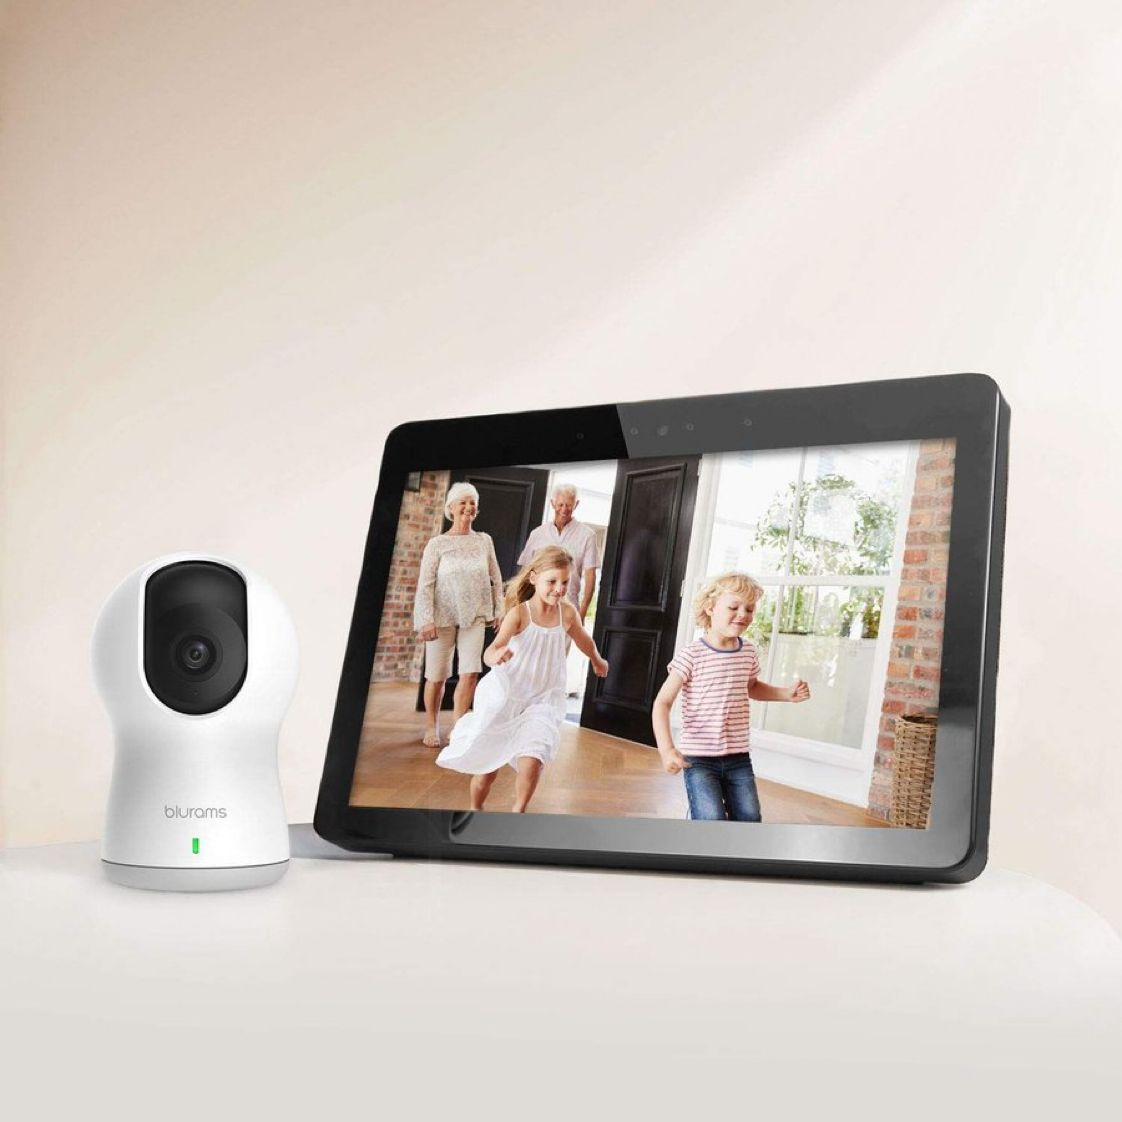 1080p Home Security Camera with Siren & Night Vision   $23.99 with Free Prime Shipping  Clip the $14.00 off coupon on page + use code OHKUOHKU at checkout   #steals #deals #stealsanddeals